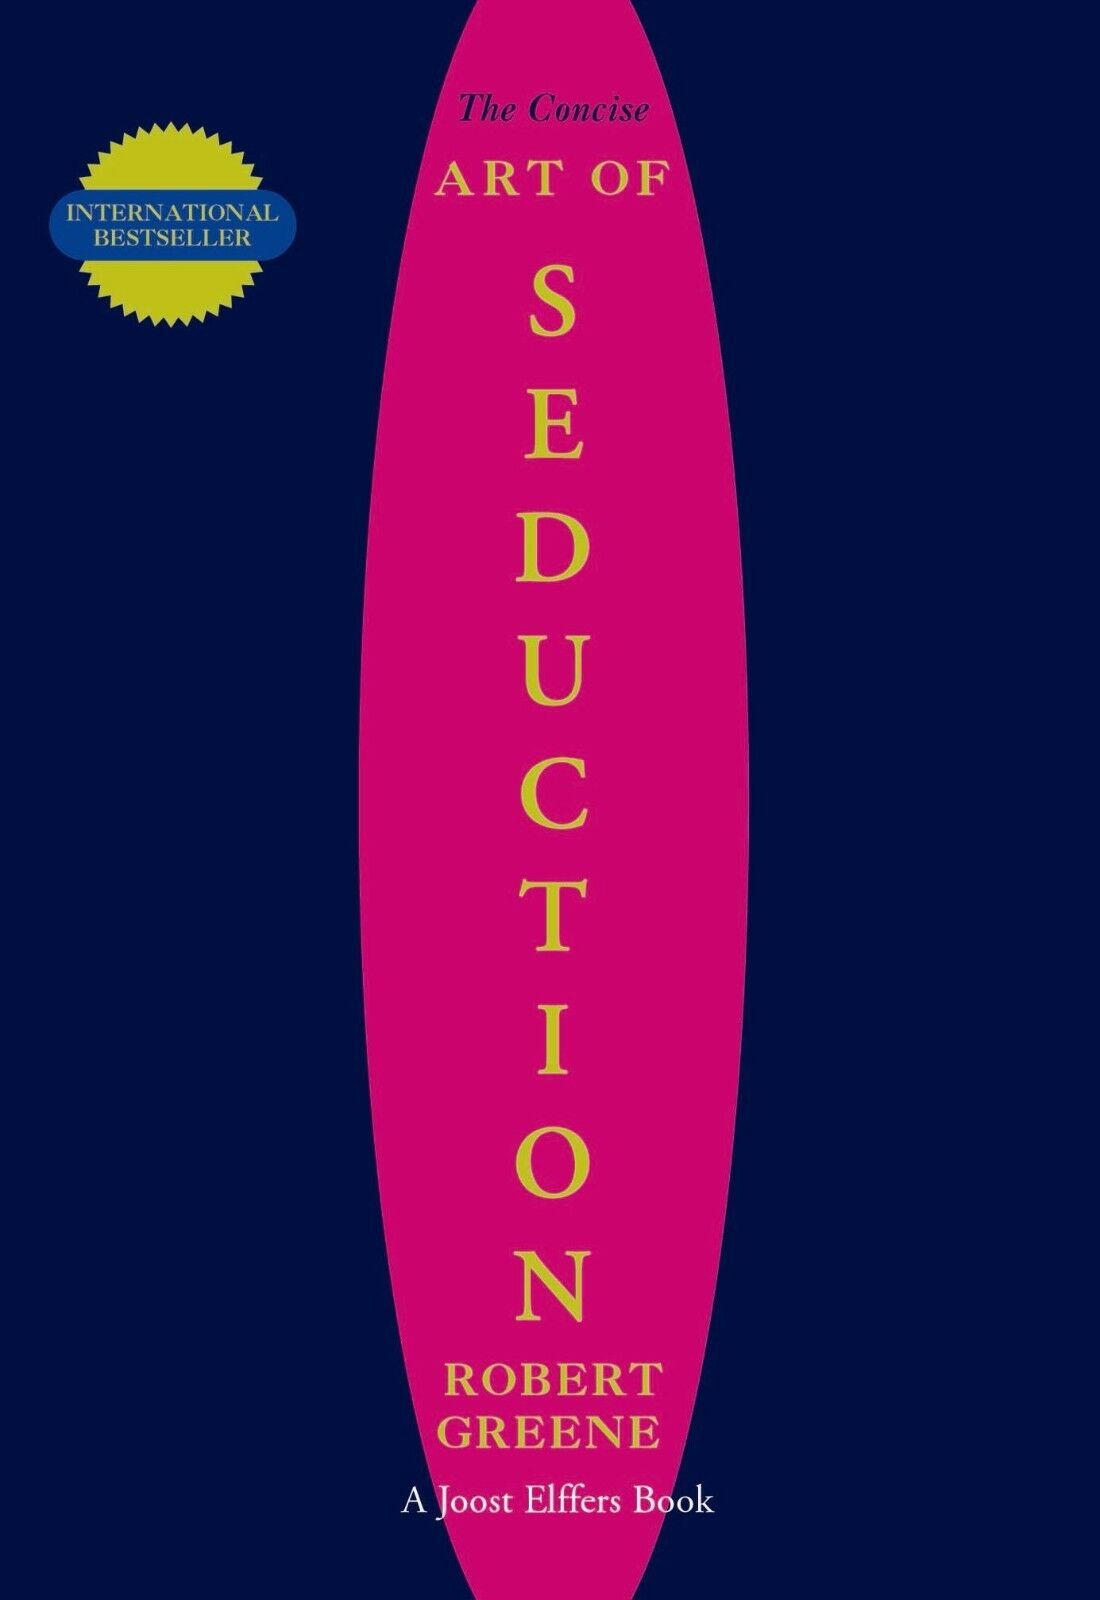 Купить CONCISE ART OF SEDUCTION BY ROBERT GREENE (Paperback Book)